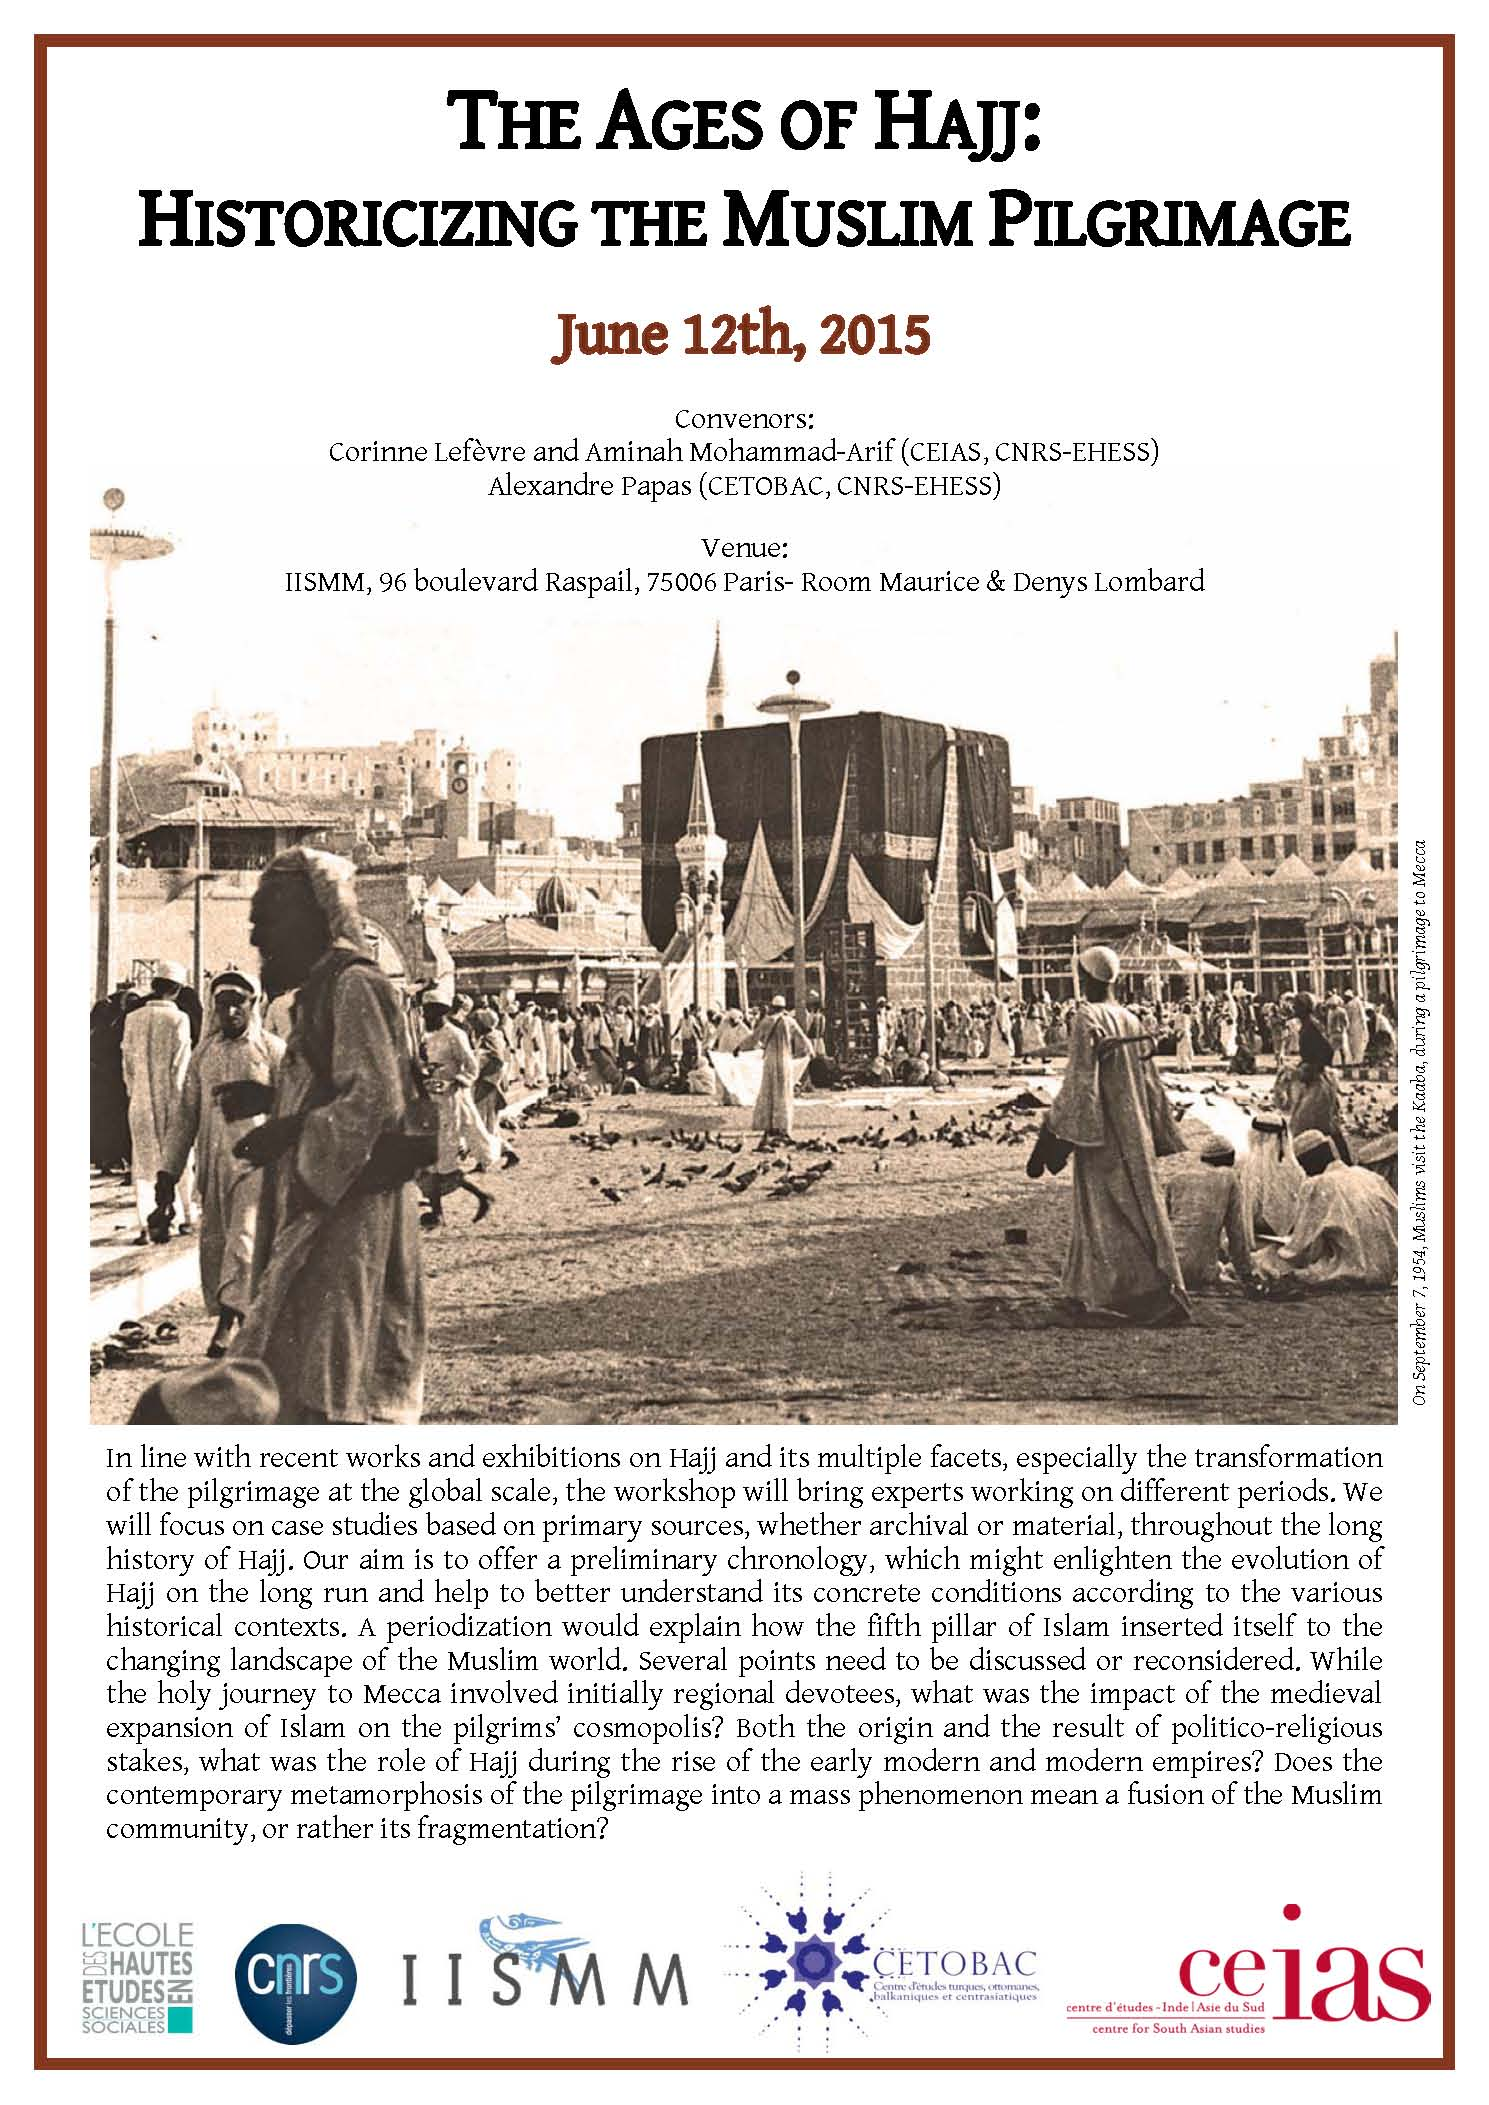 The Ages of Hajj: Historicizing the Muslim Pilgrimage